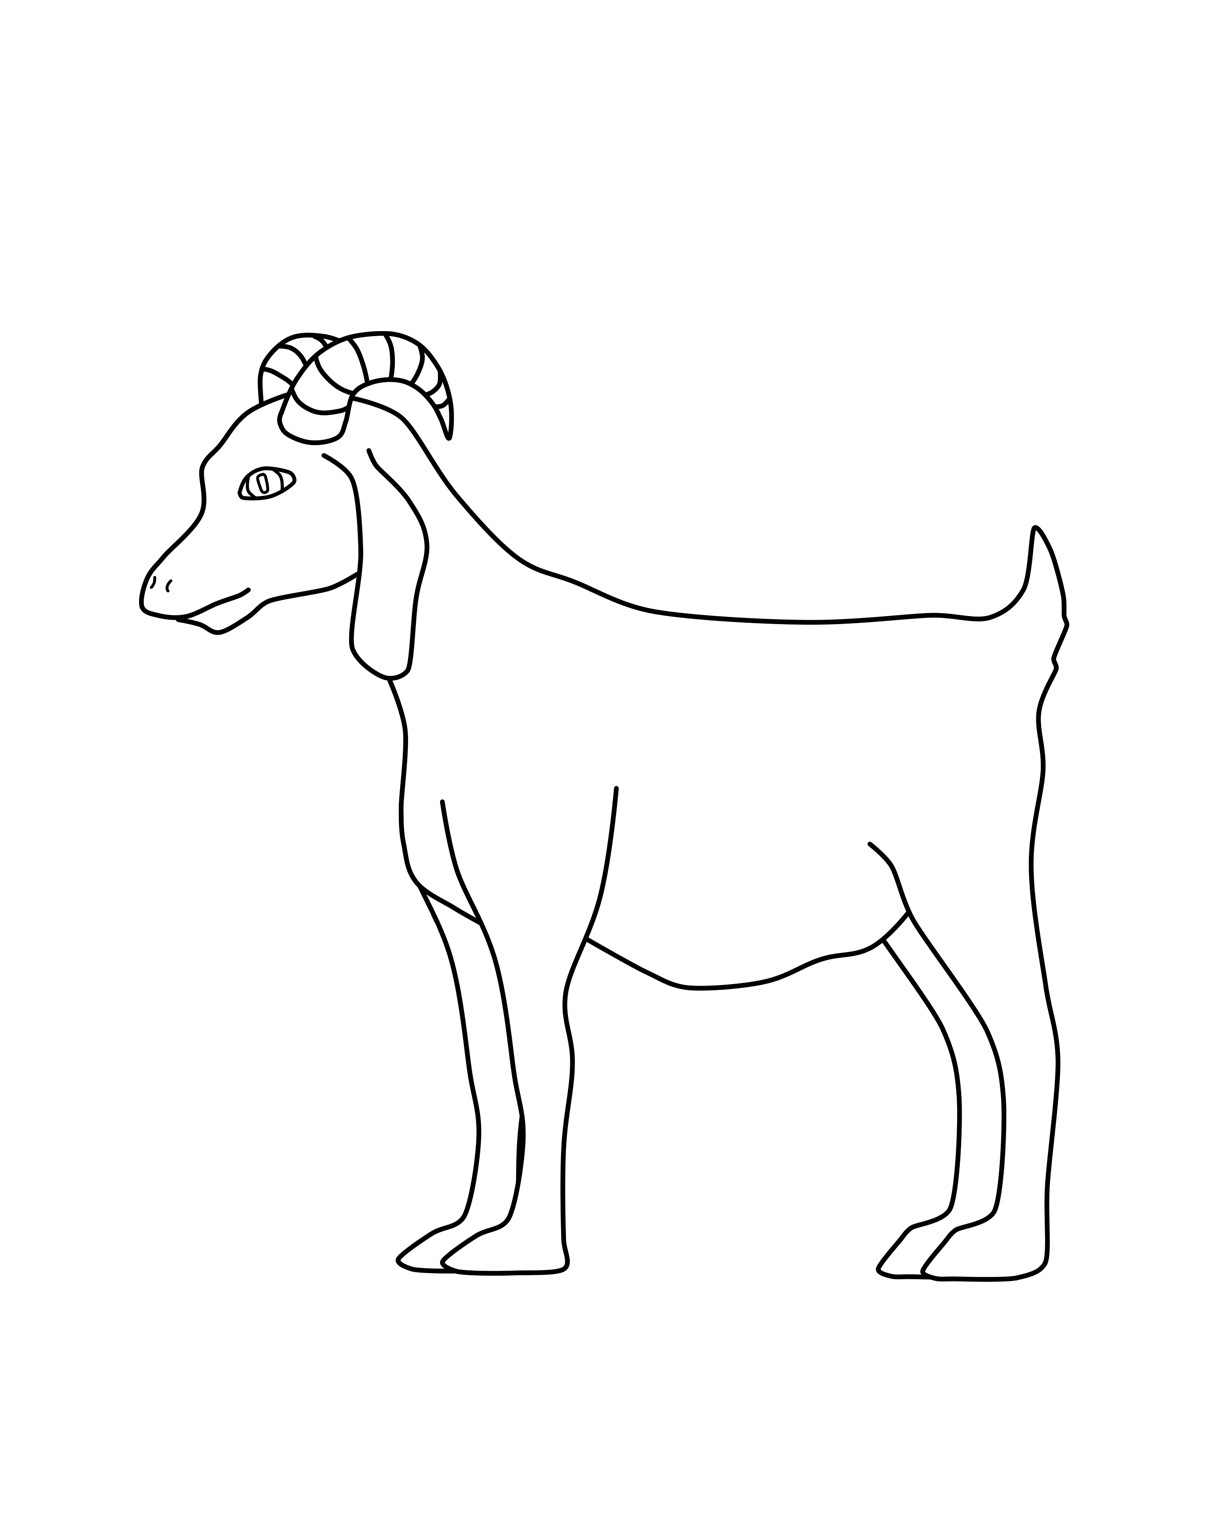 goat coloring pages free goat coloring page from super simple